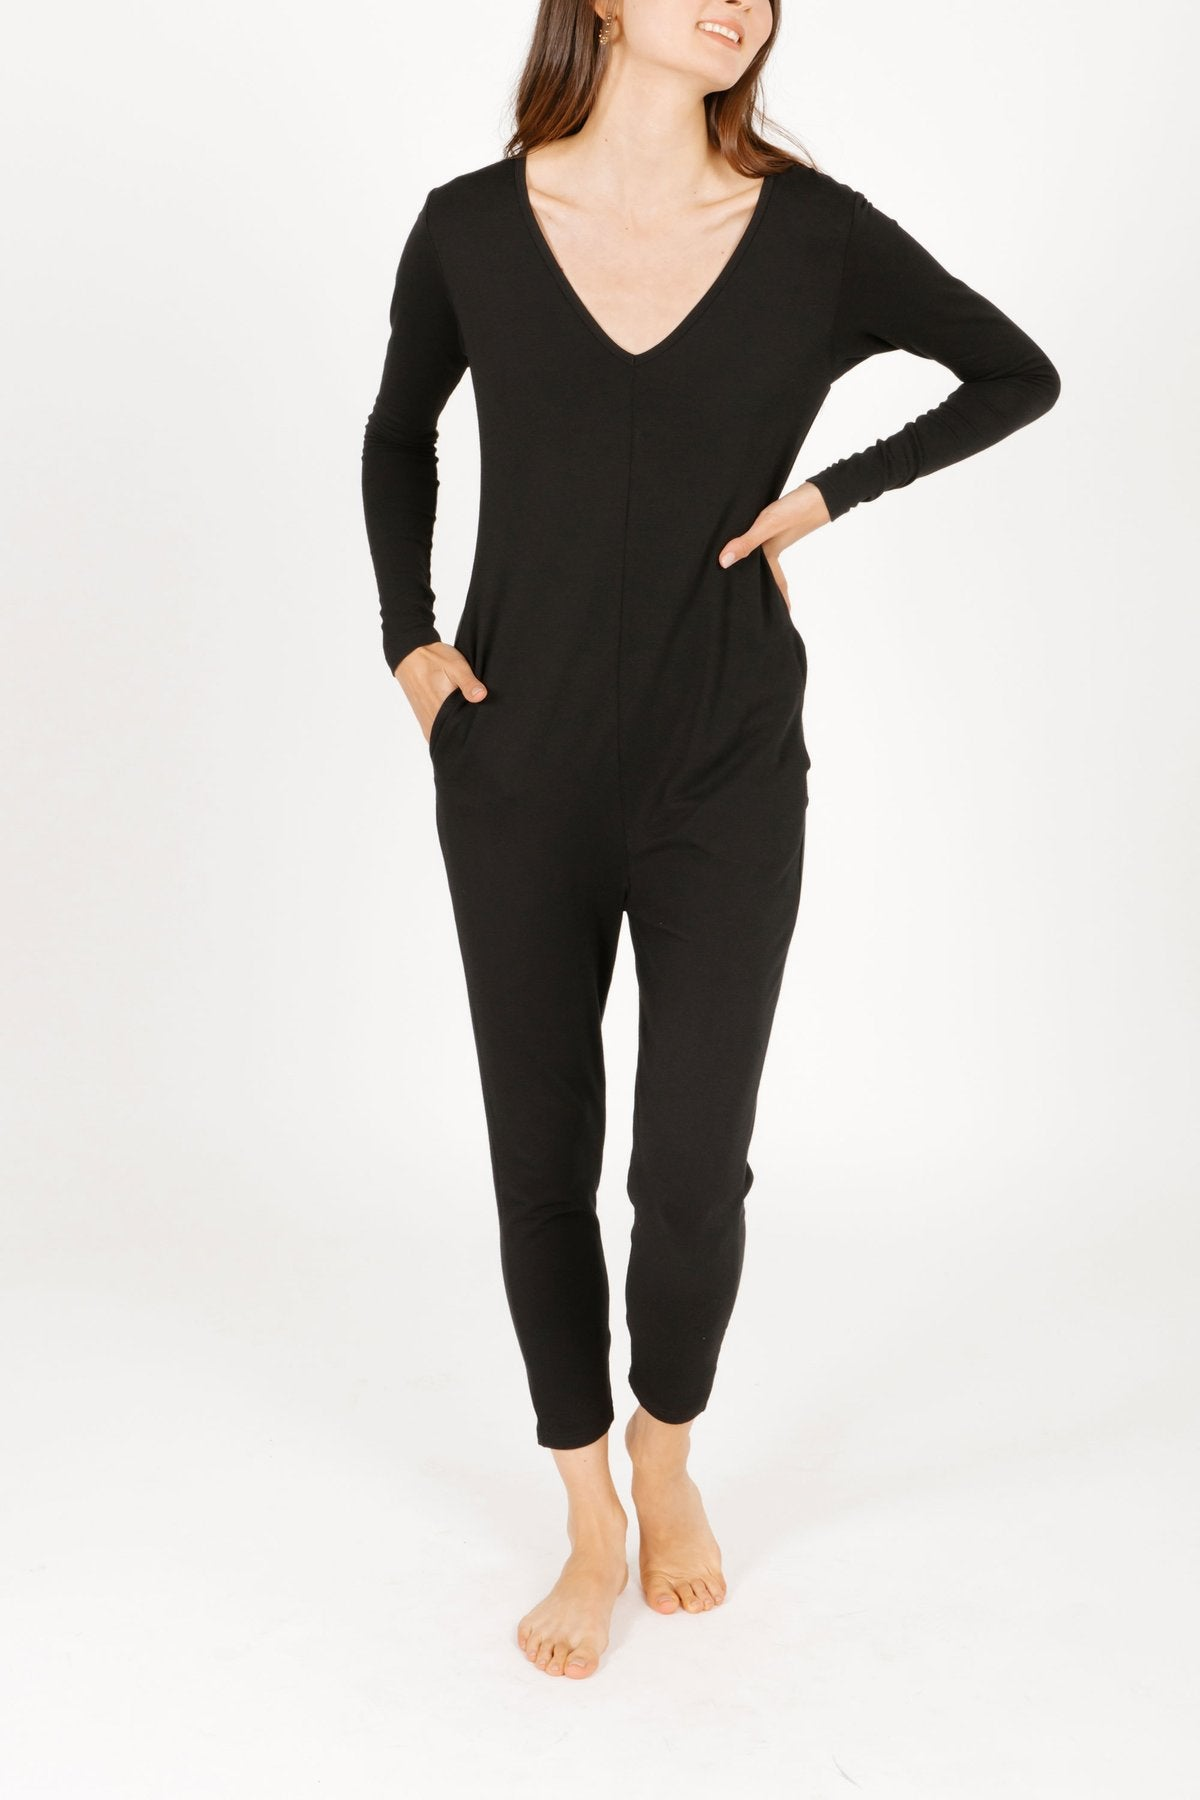 Smash + Tess Friday Romper-Black